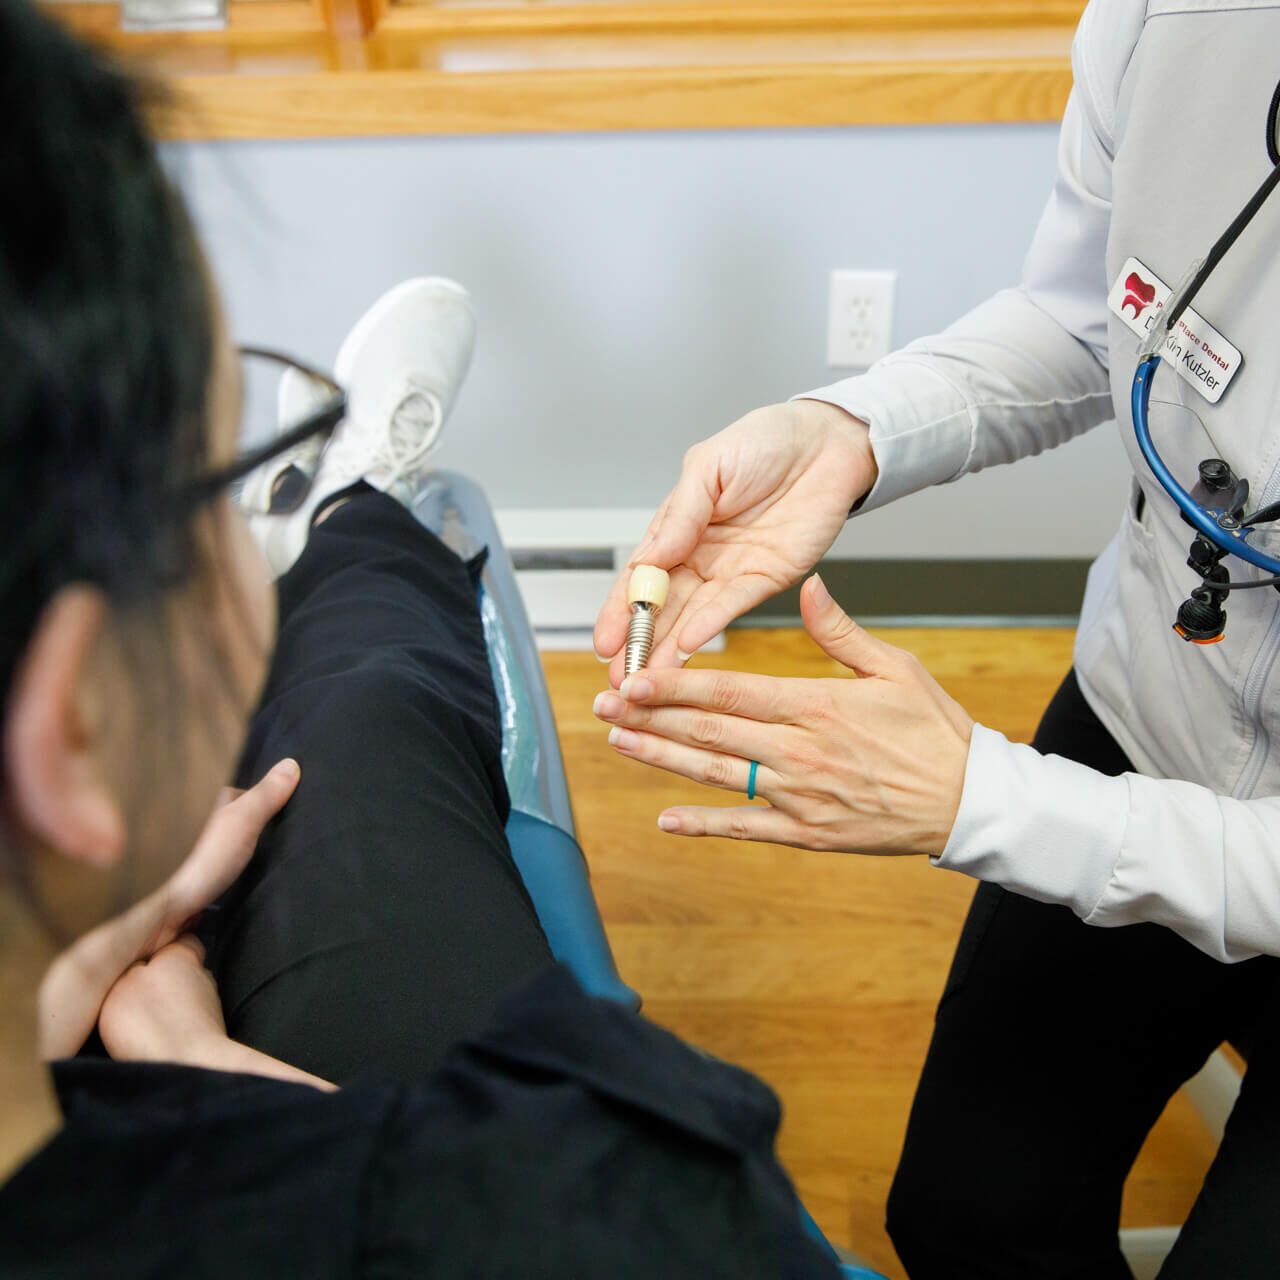 Dr Kutzler, as identified by her name tag, shows a client a dental implant